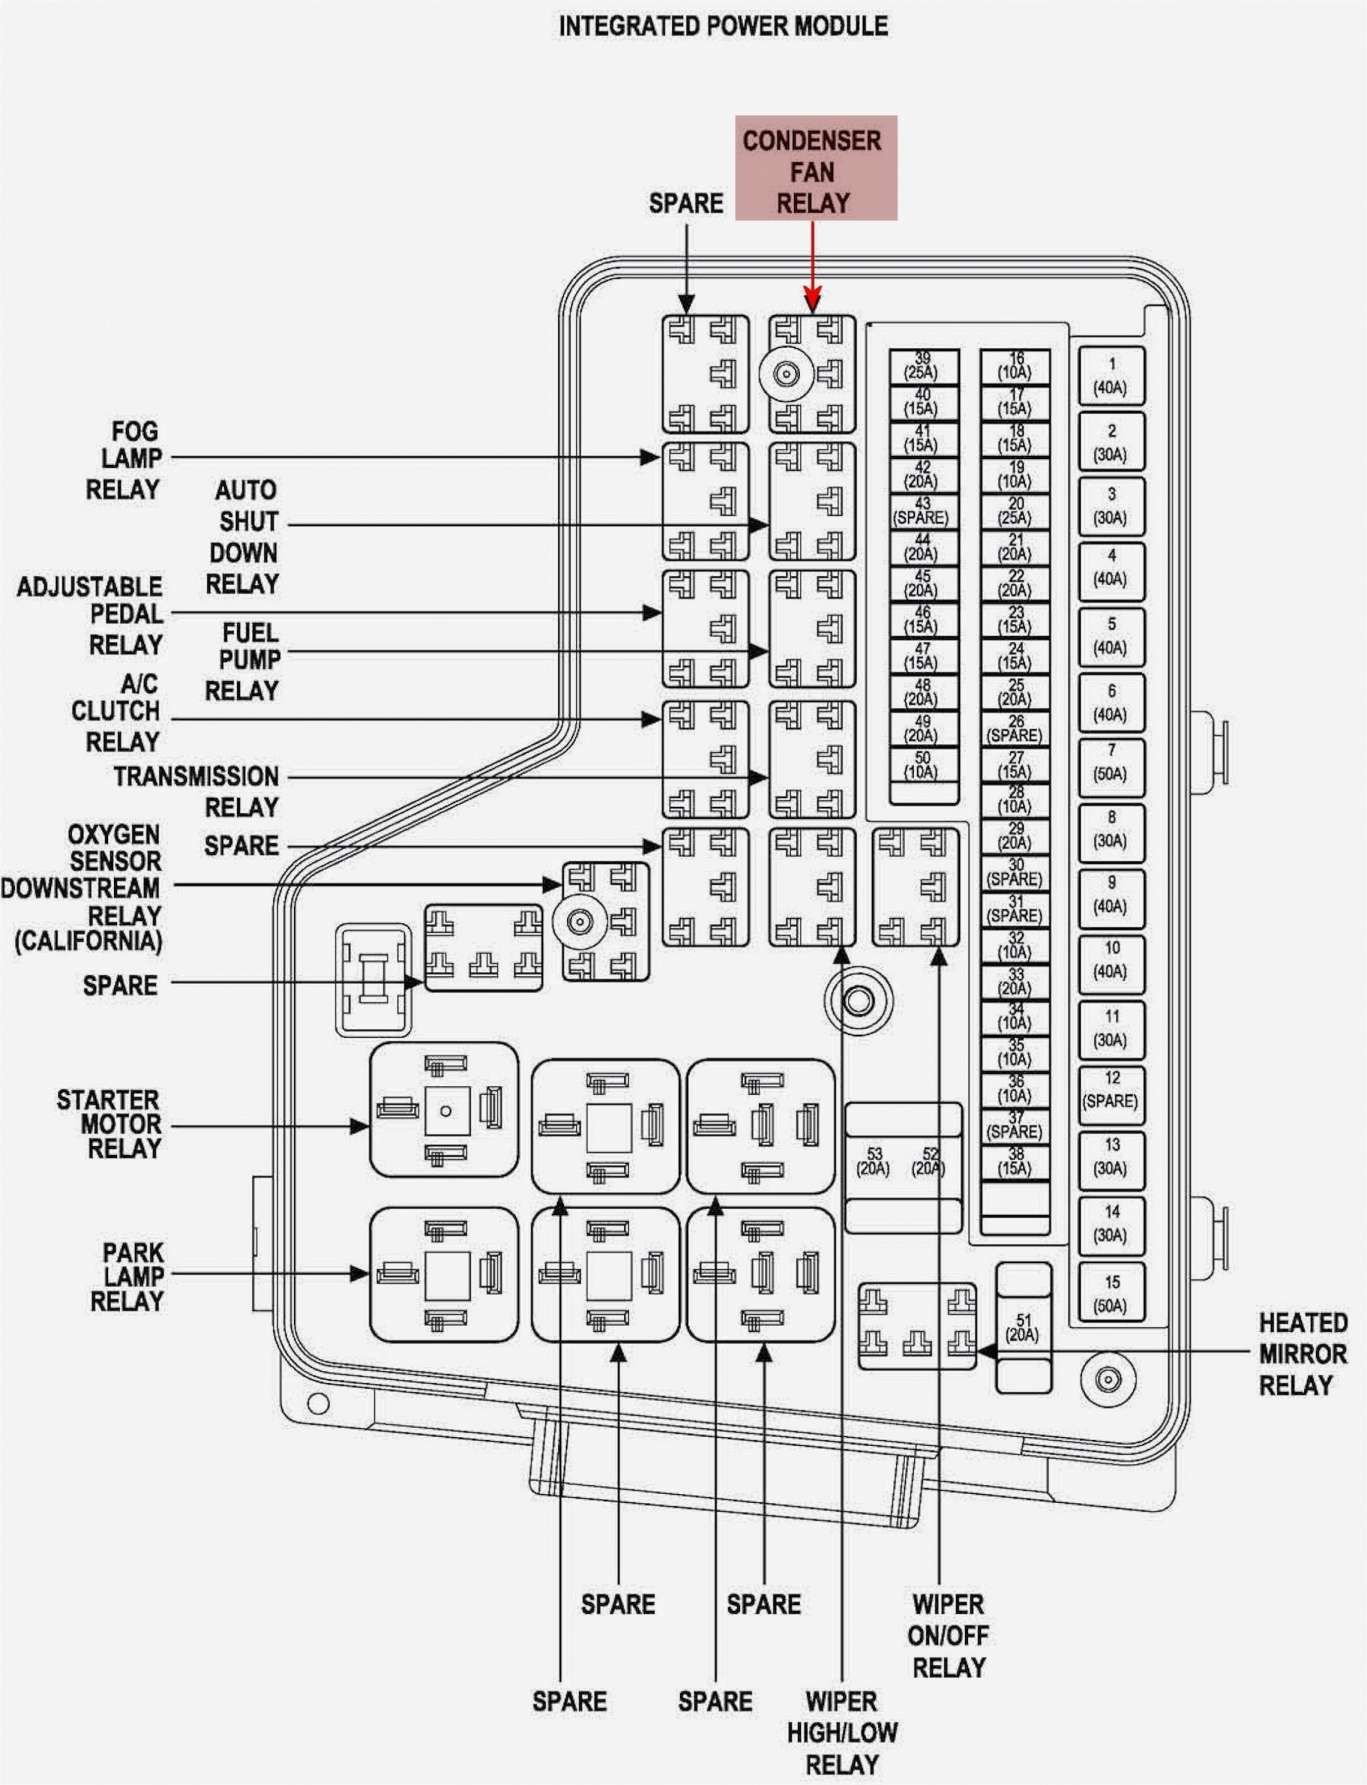 2004 dodge ram fuse box diagram - wiring diagram know-spark-b -  know-spark-b.atlanticsport.it  atlantic sport